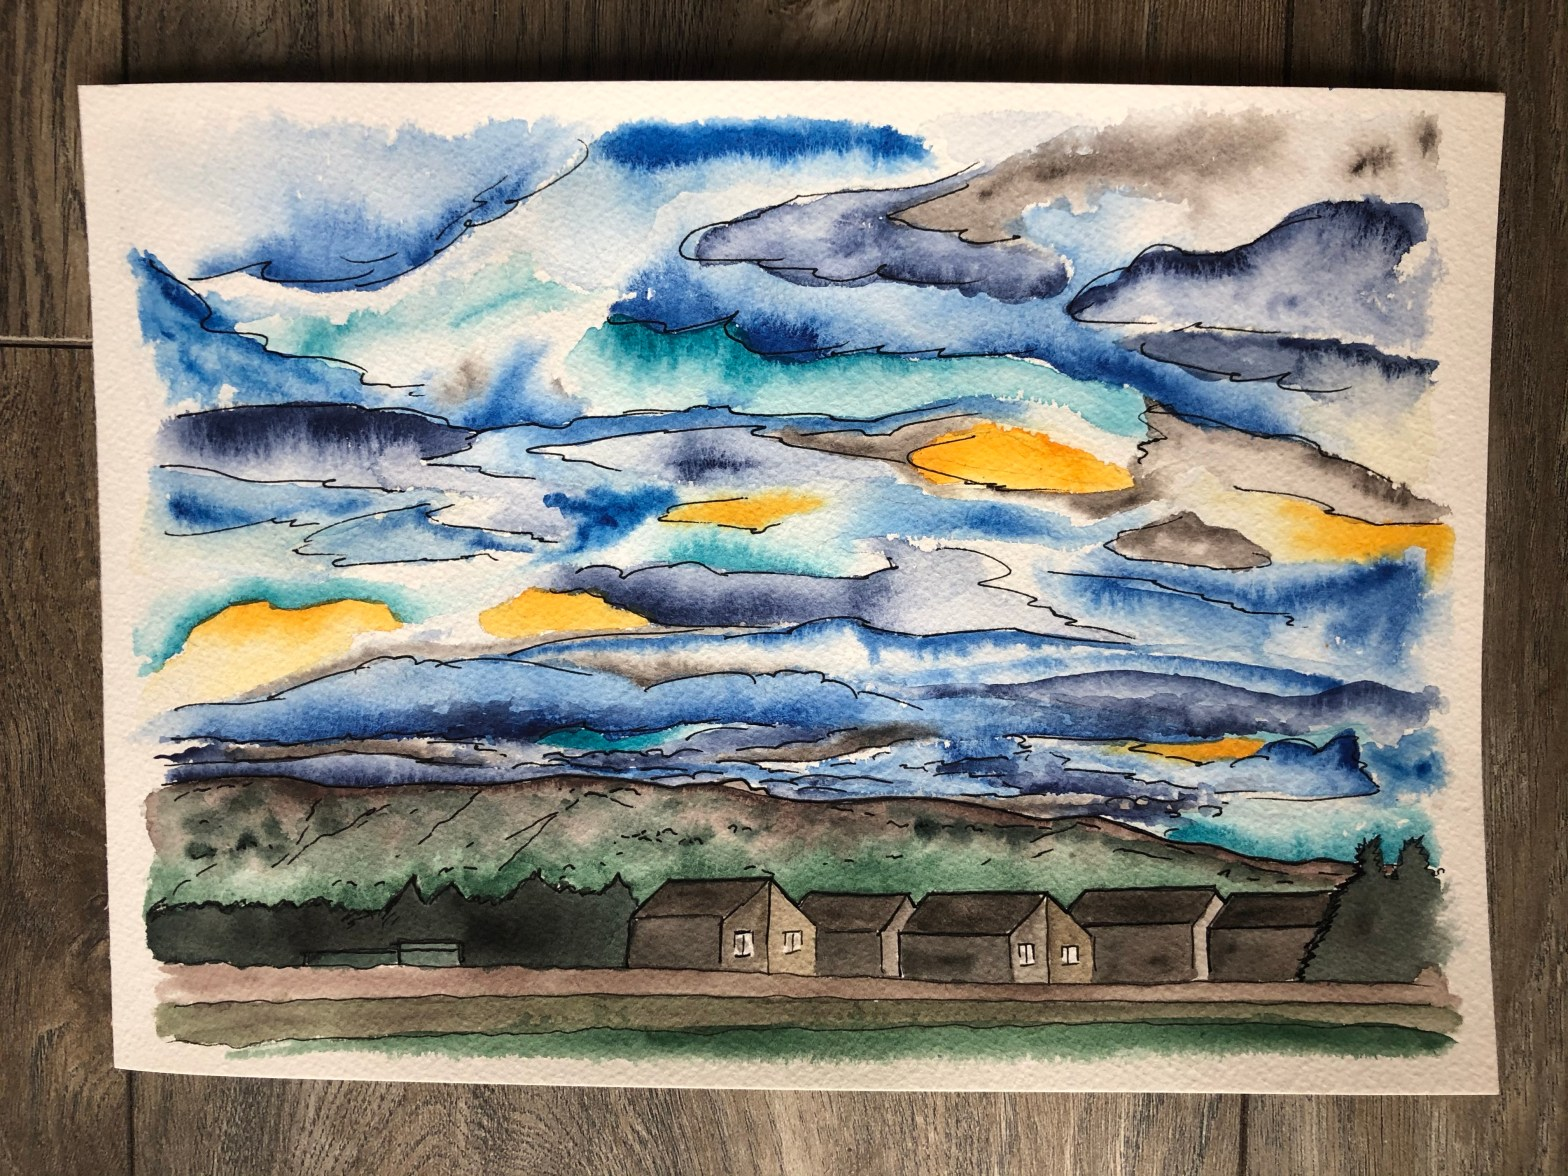 Watercolor painting of the morning sky in blue and yellow.